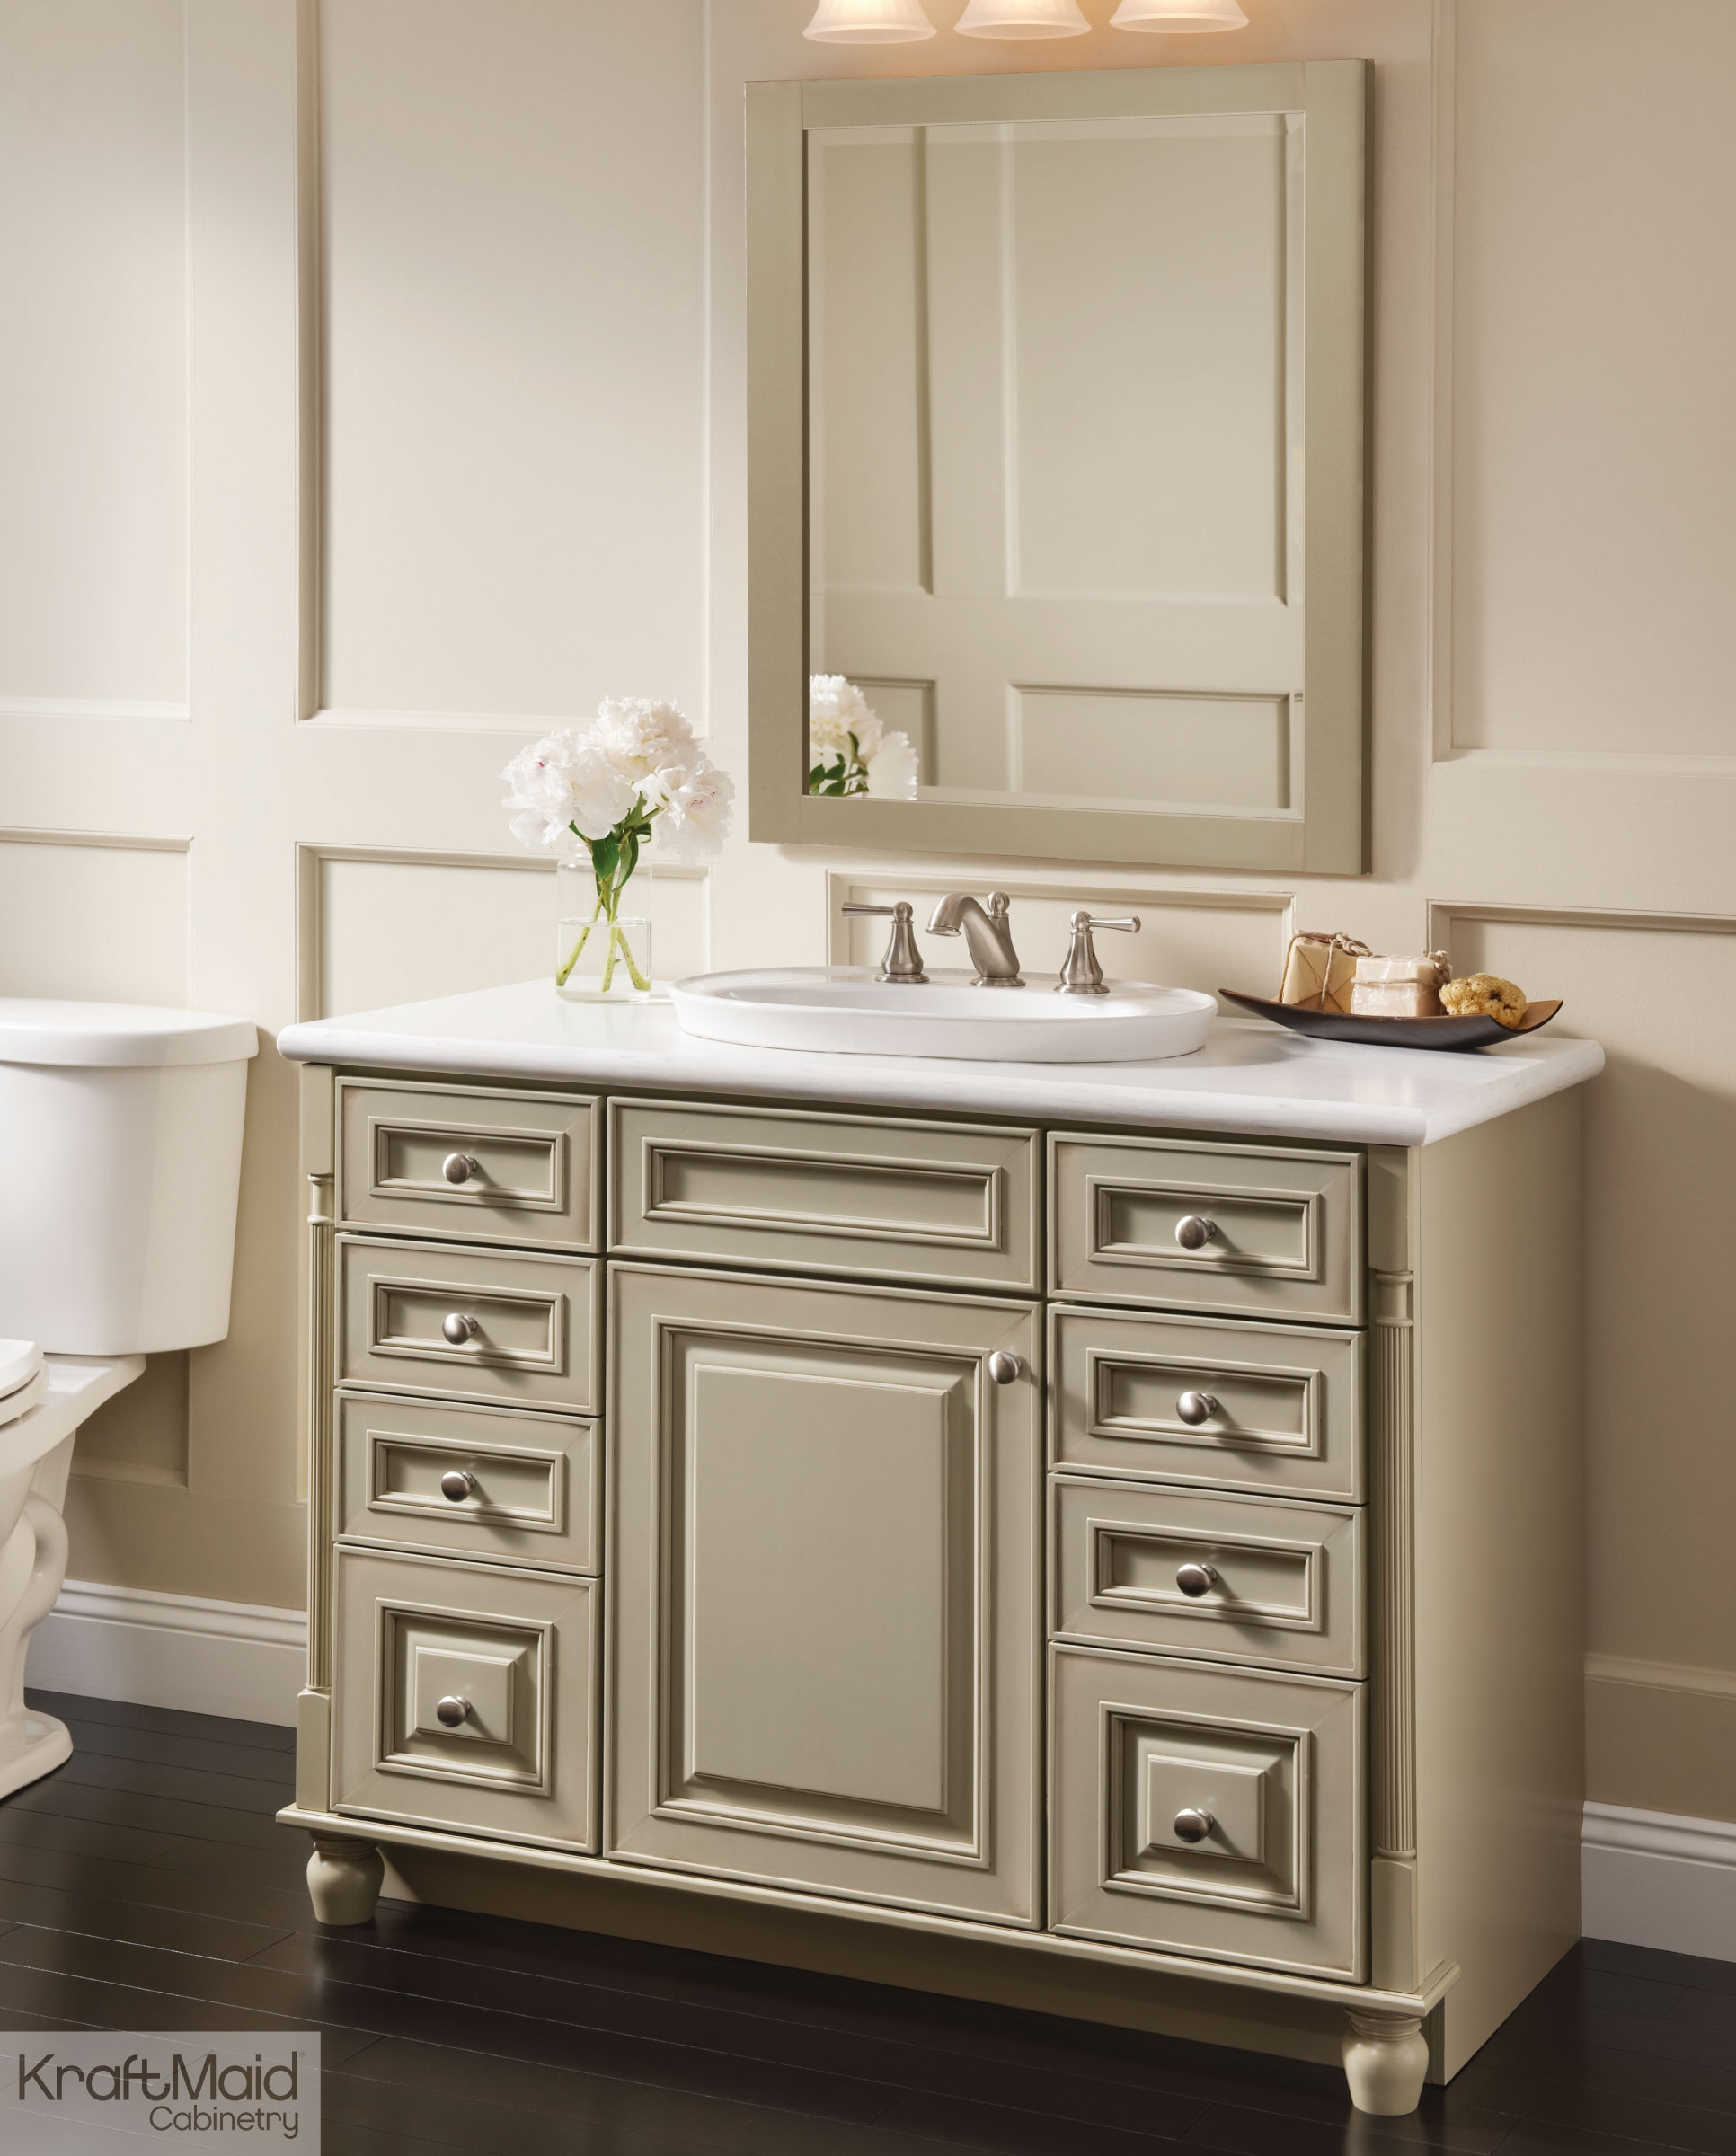 Permalink to Home Depot Kraftmaid Bathroom Cabinets